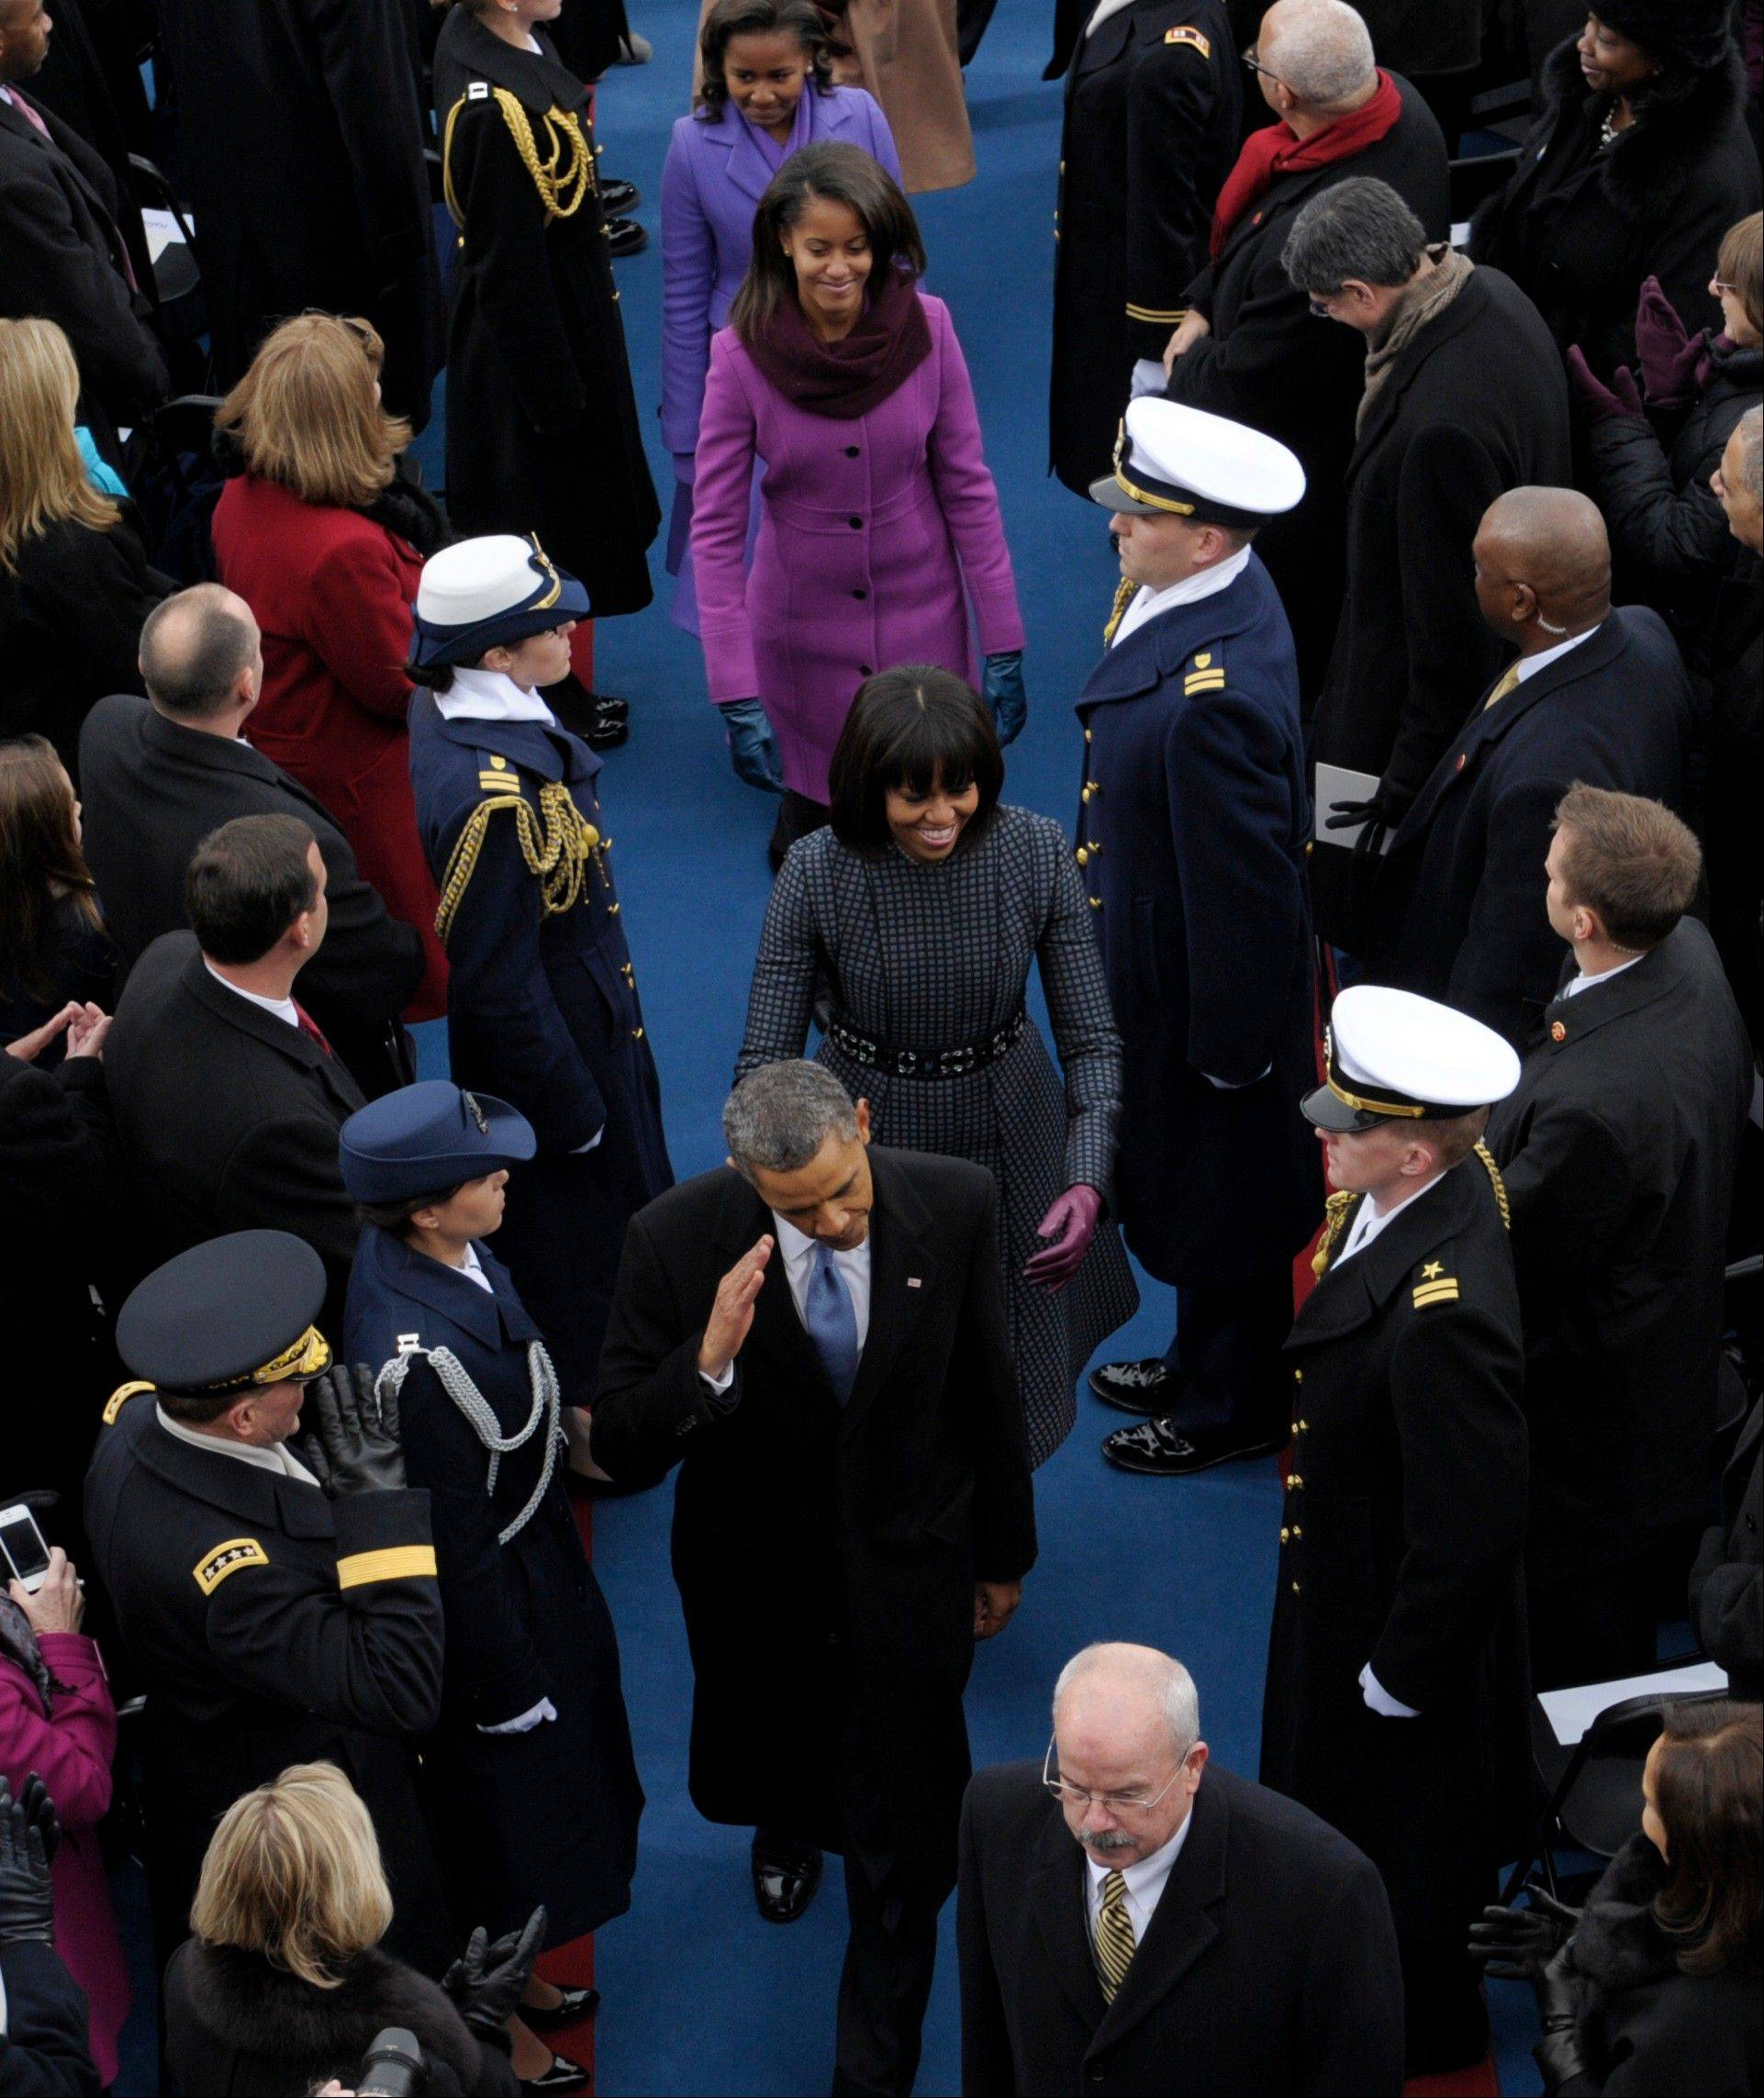 President Barack Obama salutes as he leaves with his family following the ceremonial swearing-in at the U.S. Capitol during the 57th Presidential Inauguration in Washington, Monday, Jan. 21, 2013.